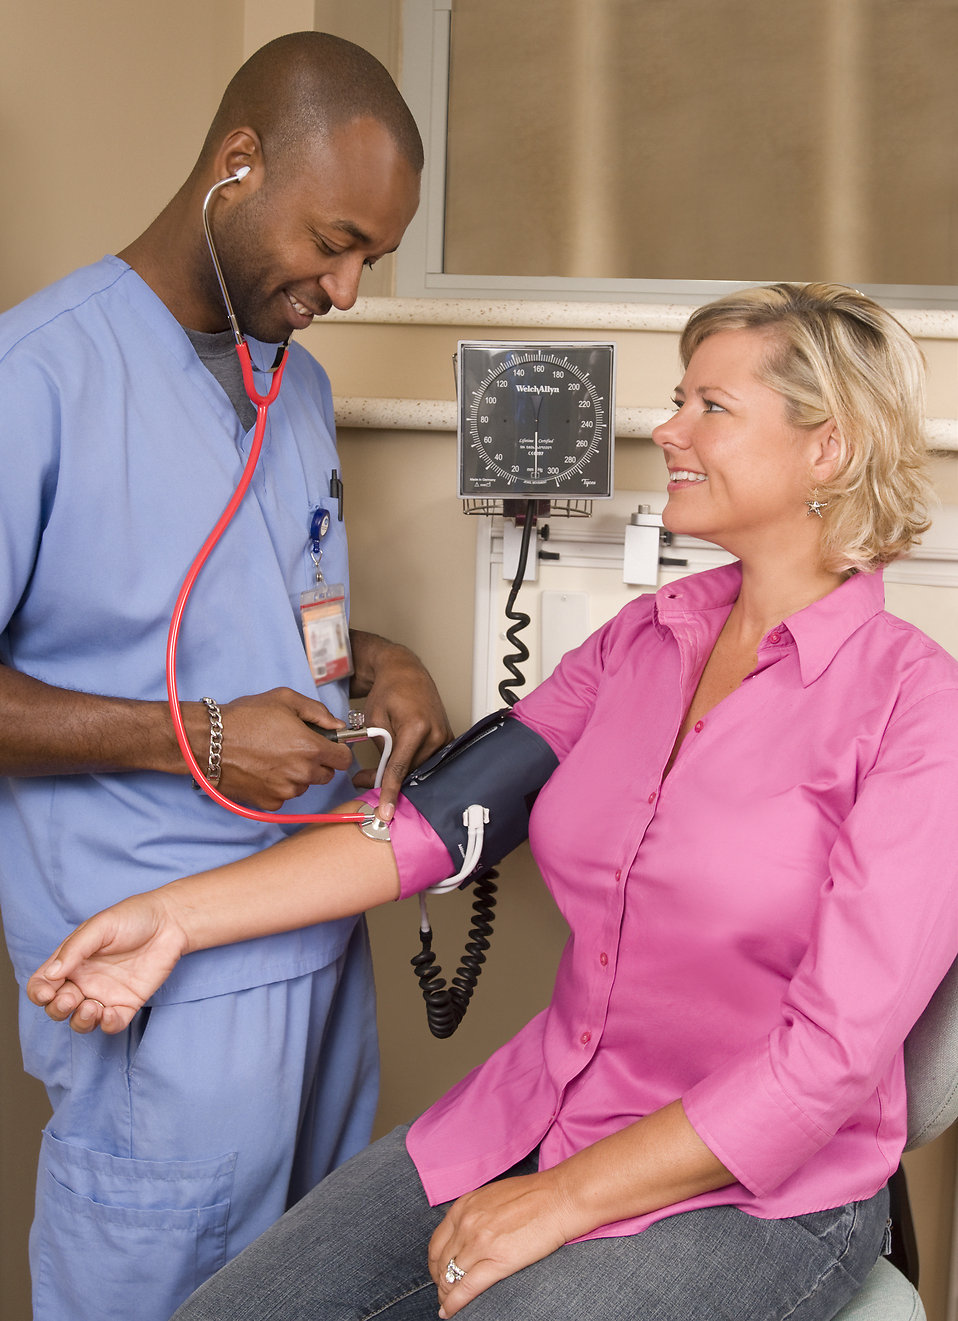 How to Become a Registered Nurse - Medical and Health